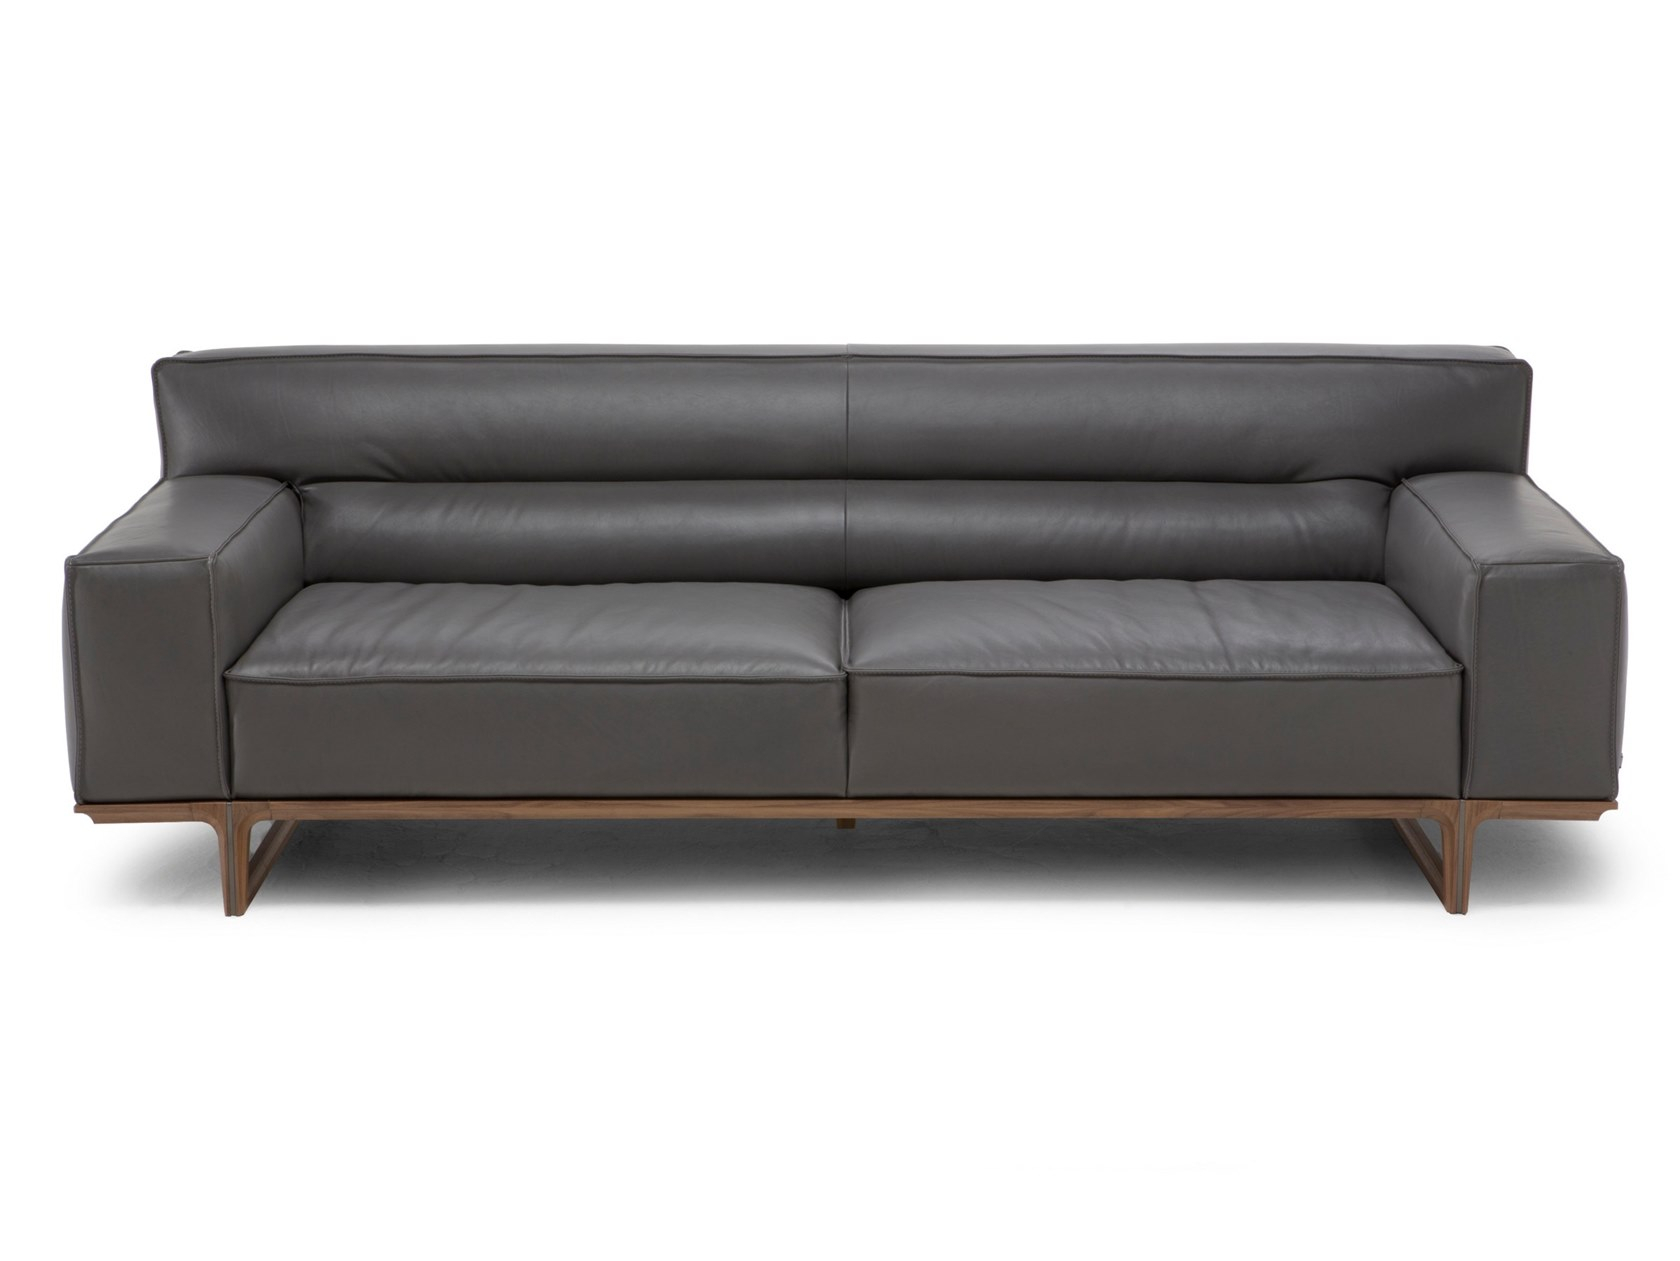 natuzzi sectional sofa connectors key city furniture sofas kendo 3 seater collection by design